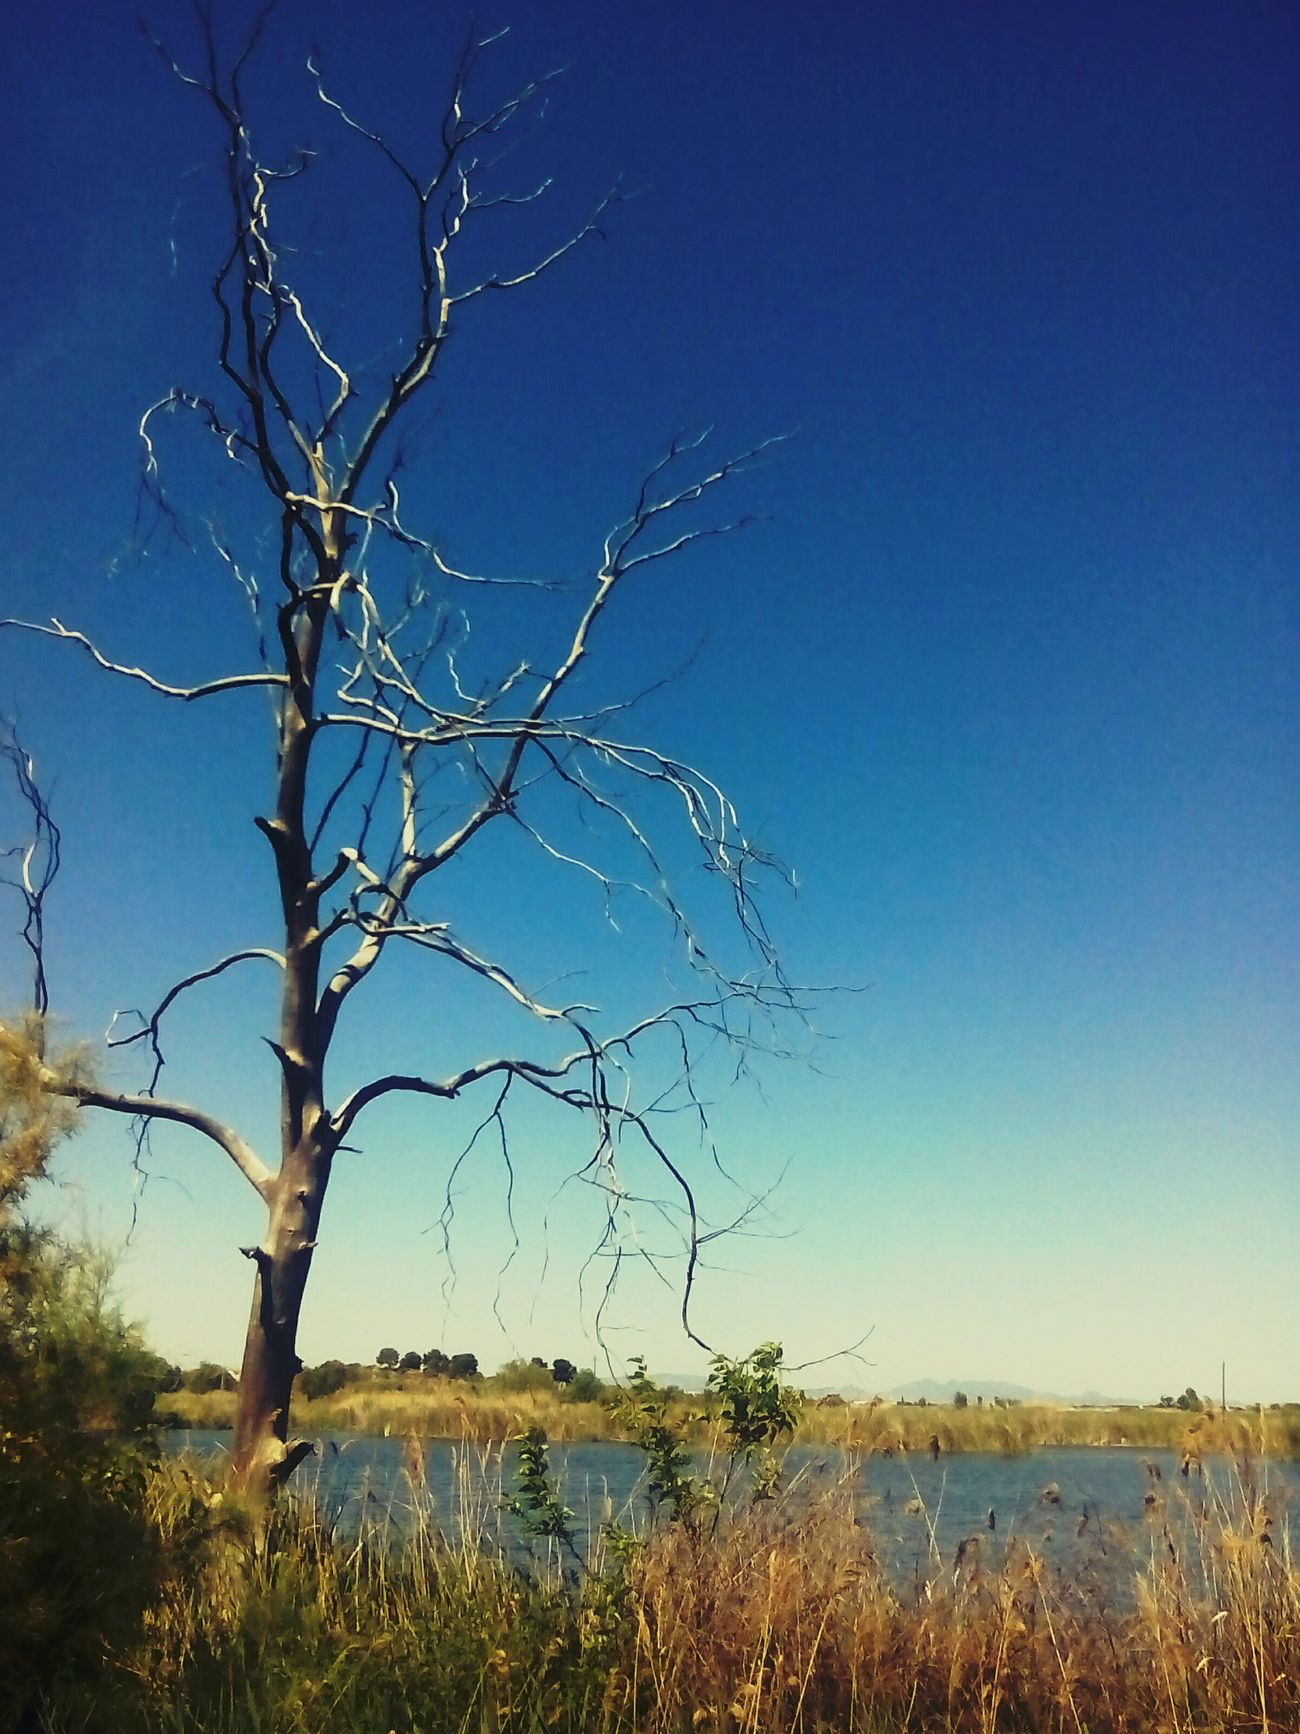 Landscape_photography Landscape_Collection Taking Photos Tree_collection  Nature Dry Tree Lake View Enyoing The View